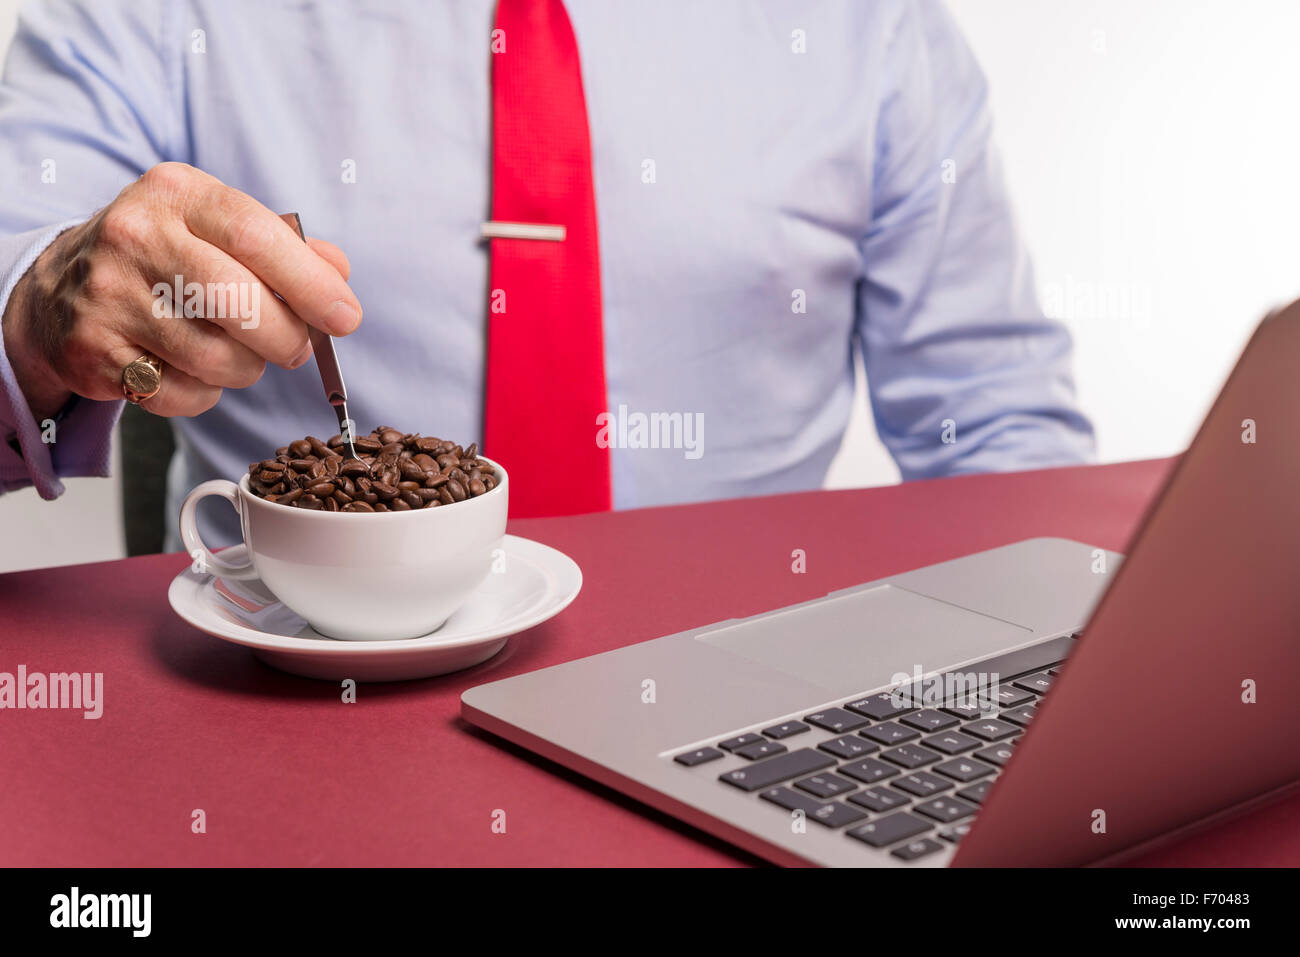 Male in office surroundings stirring a cup containing strong arabica coffee beans. concept strong morning coffee - Stock Image